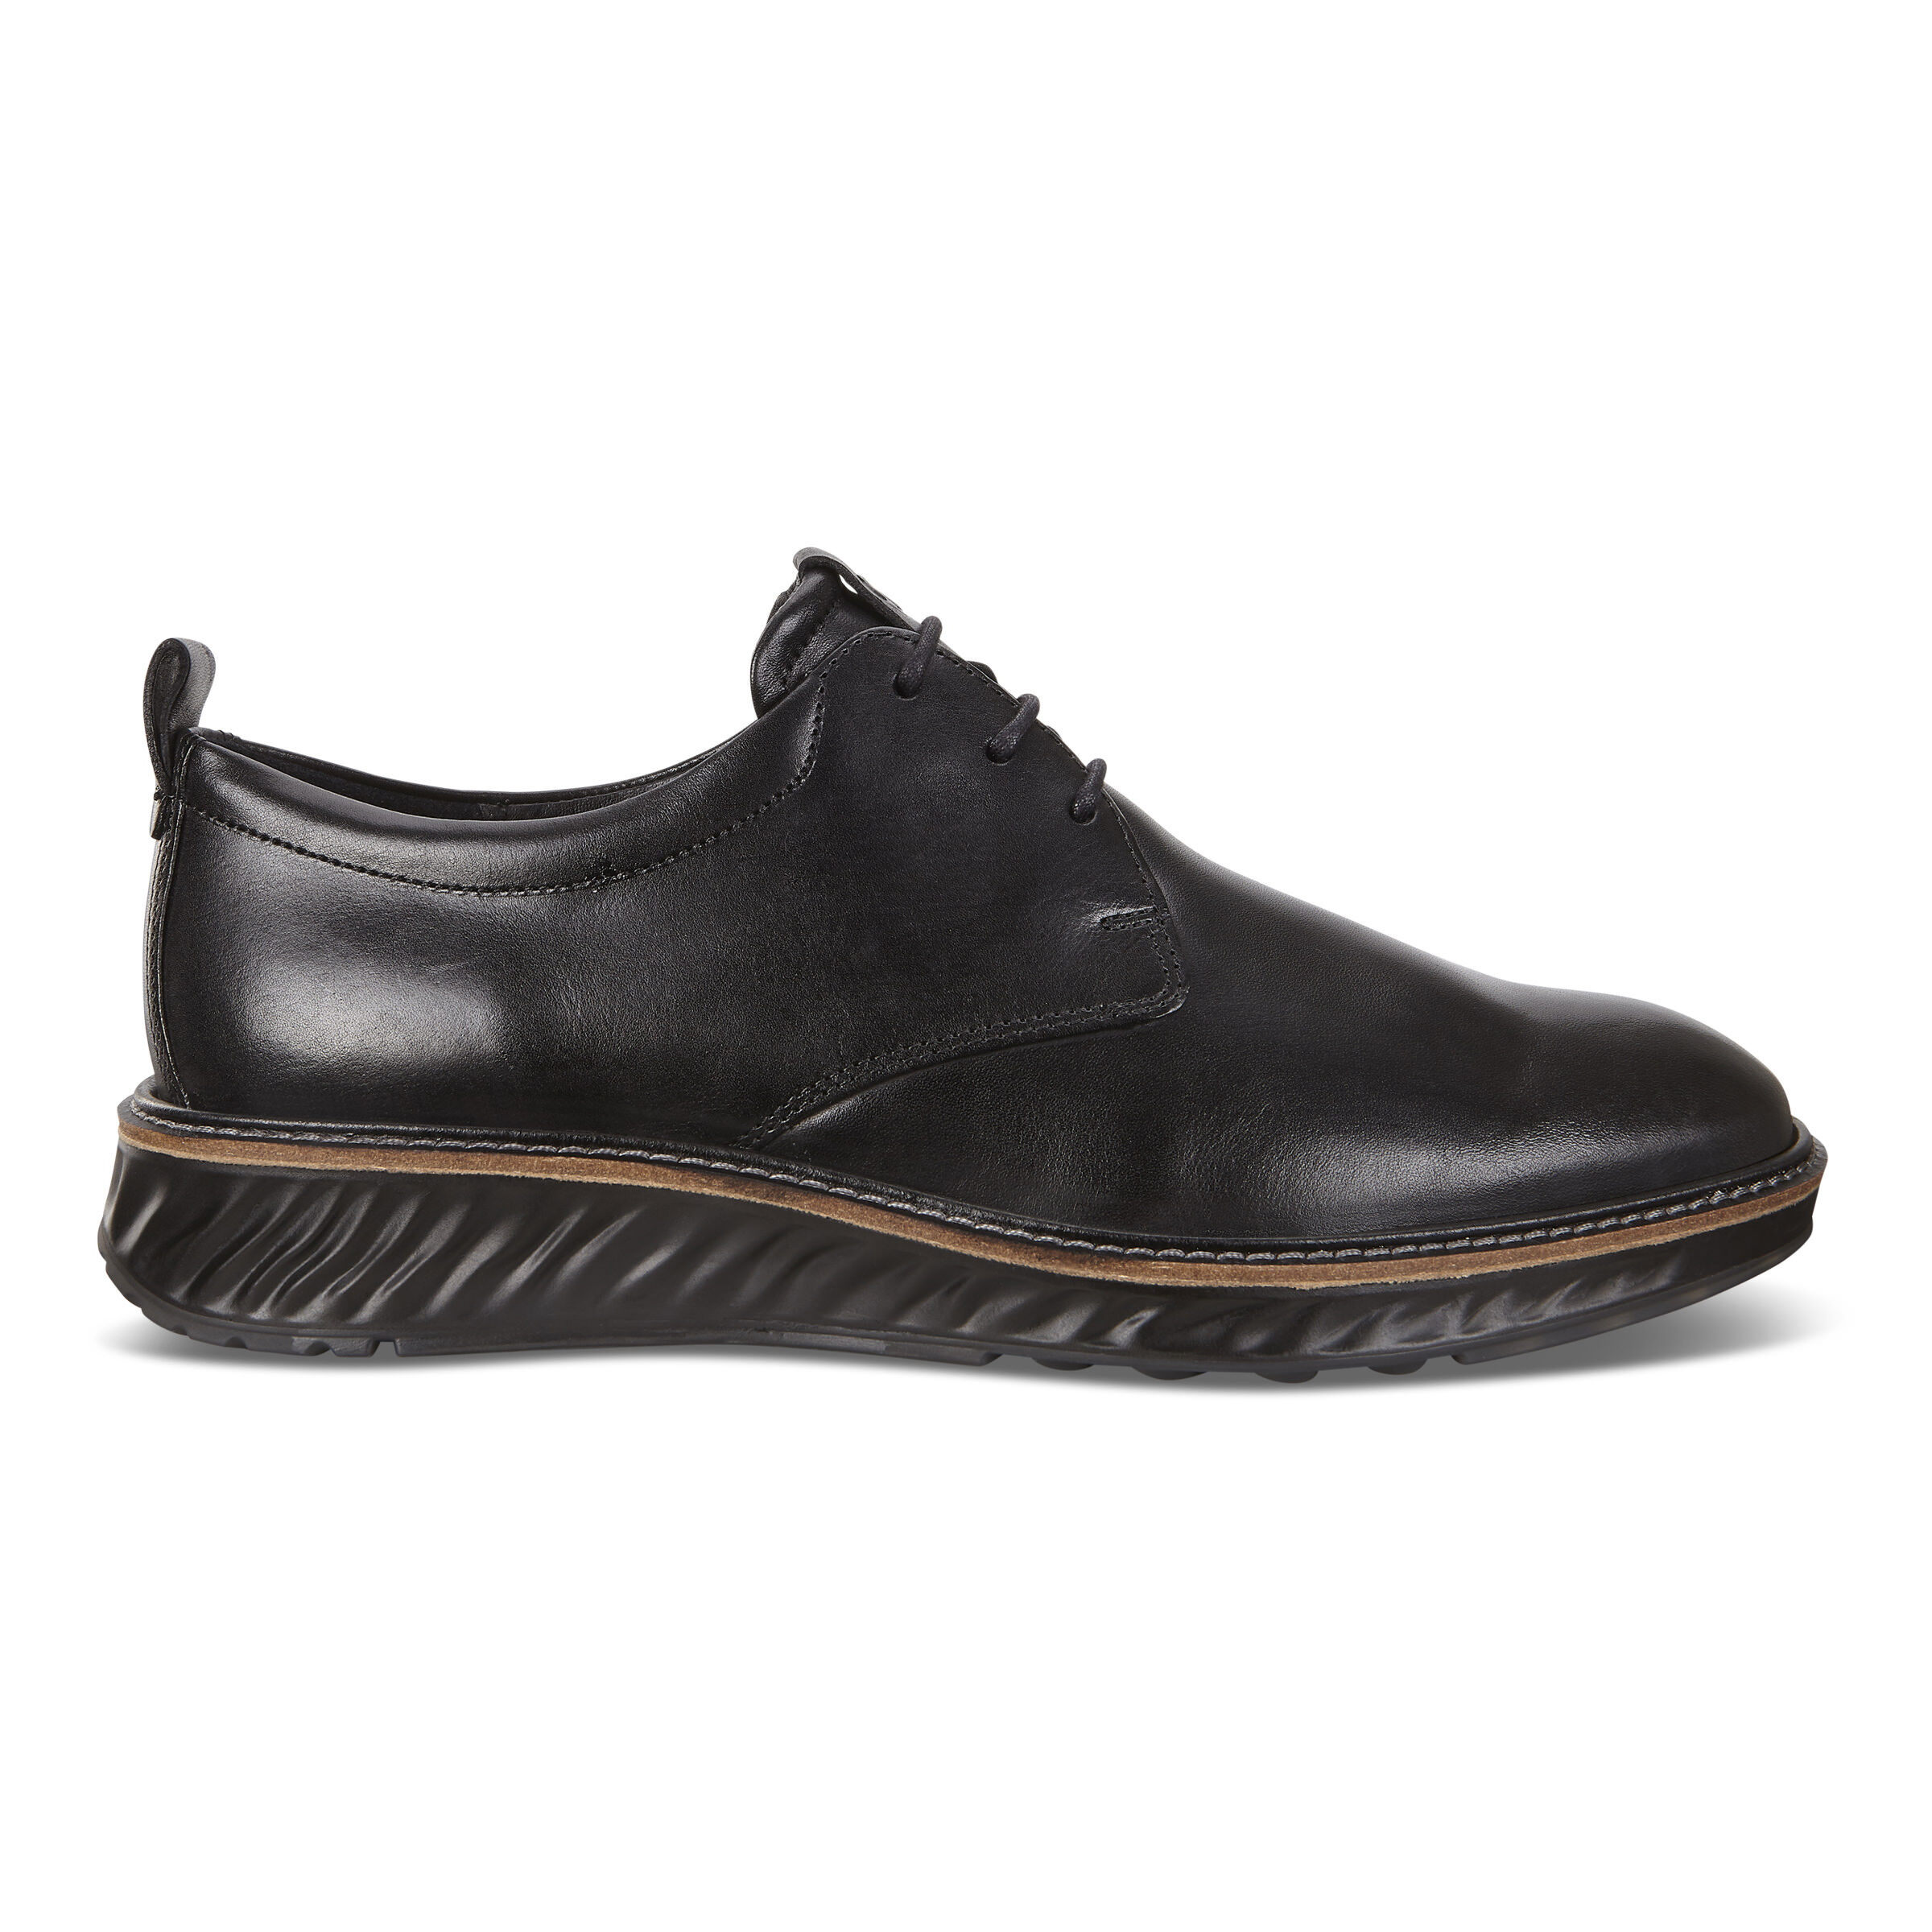 Chaussures Chaussures Pour HommesEcco® Pour Chaussures Pour Chaussures Pour HommesEcco® HommesEcco® Chaussures HommesEcco® roBedCx